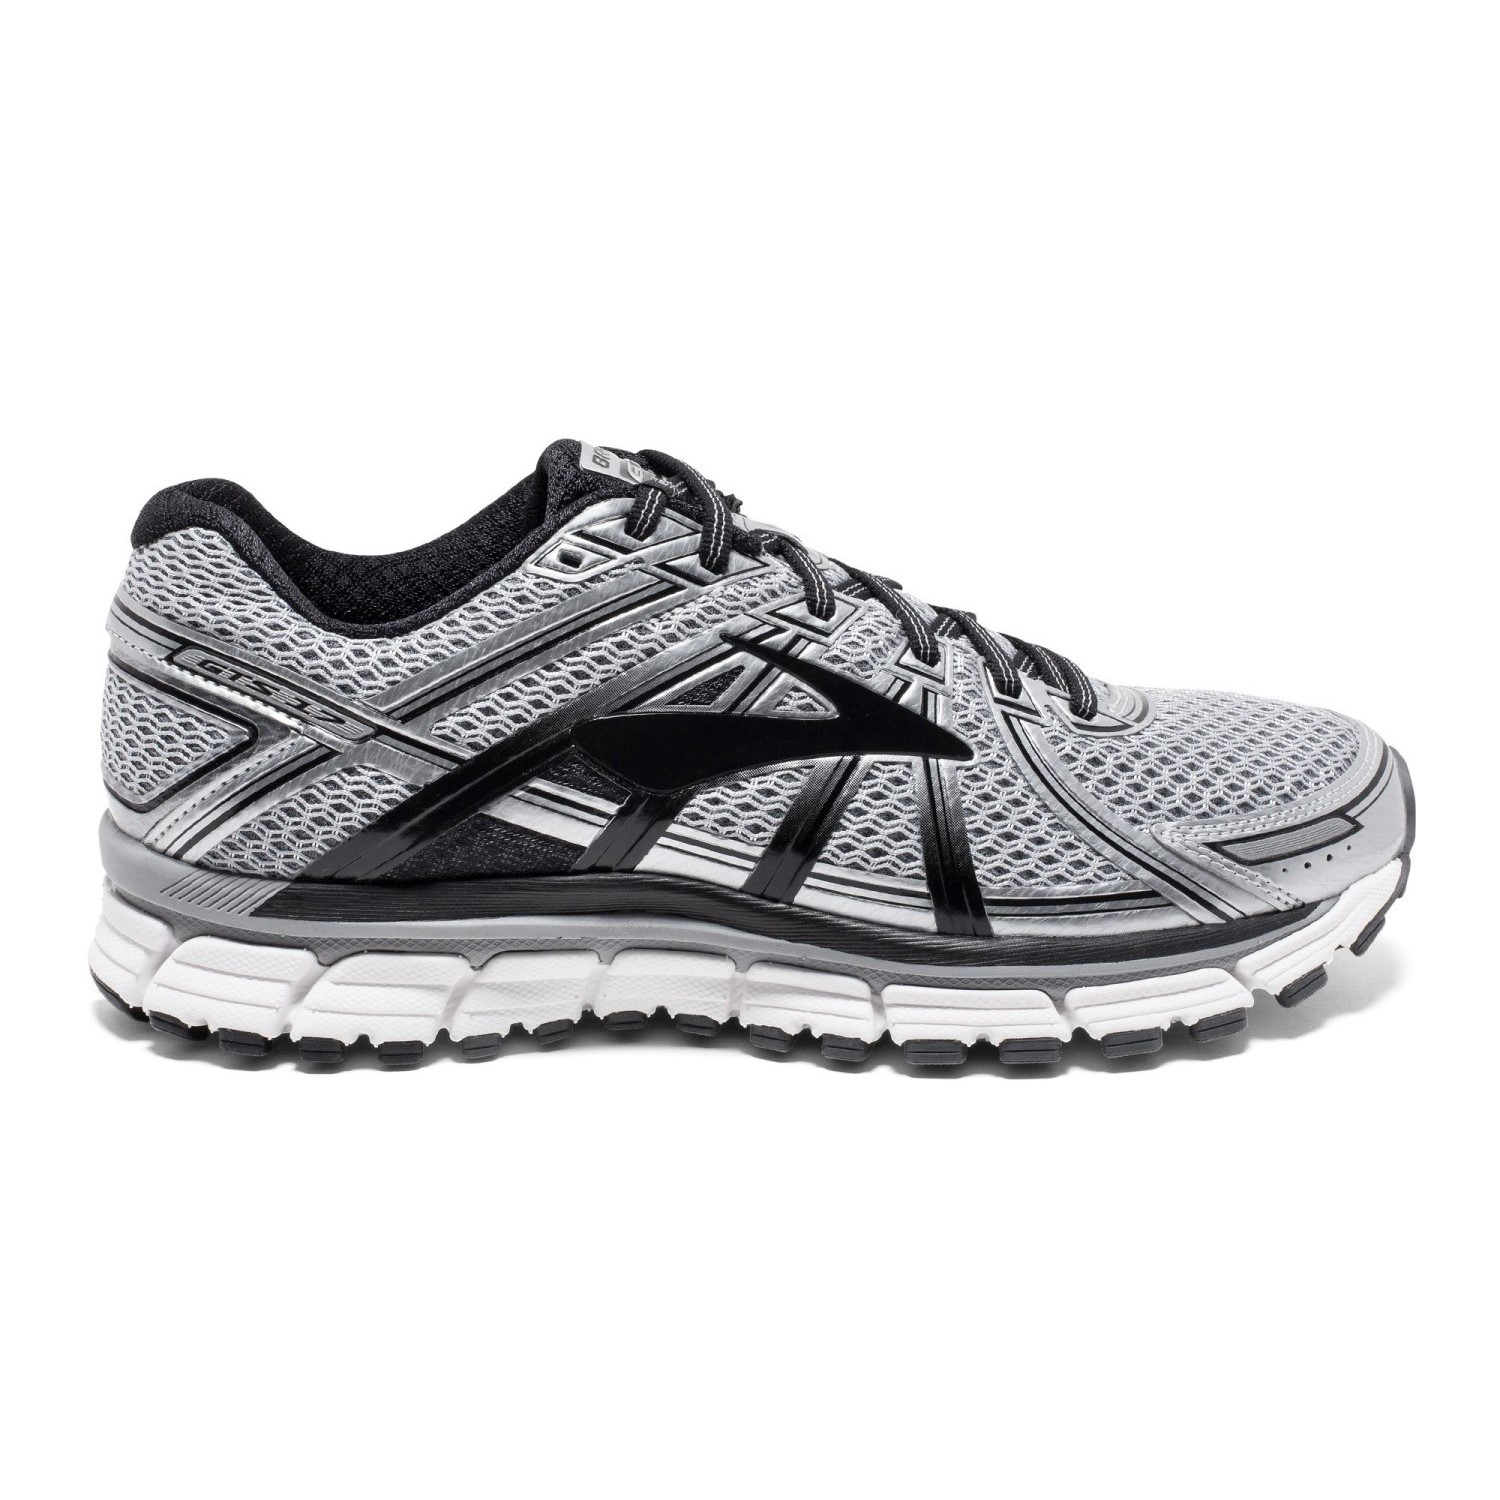 d651b8b548 Brooks Adrenaline GTS 17 - Mens Running Shoes - Silver/Black/Anthracite